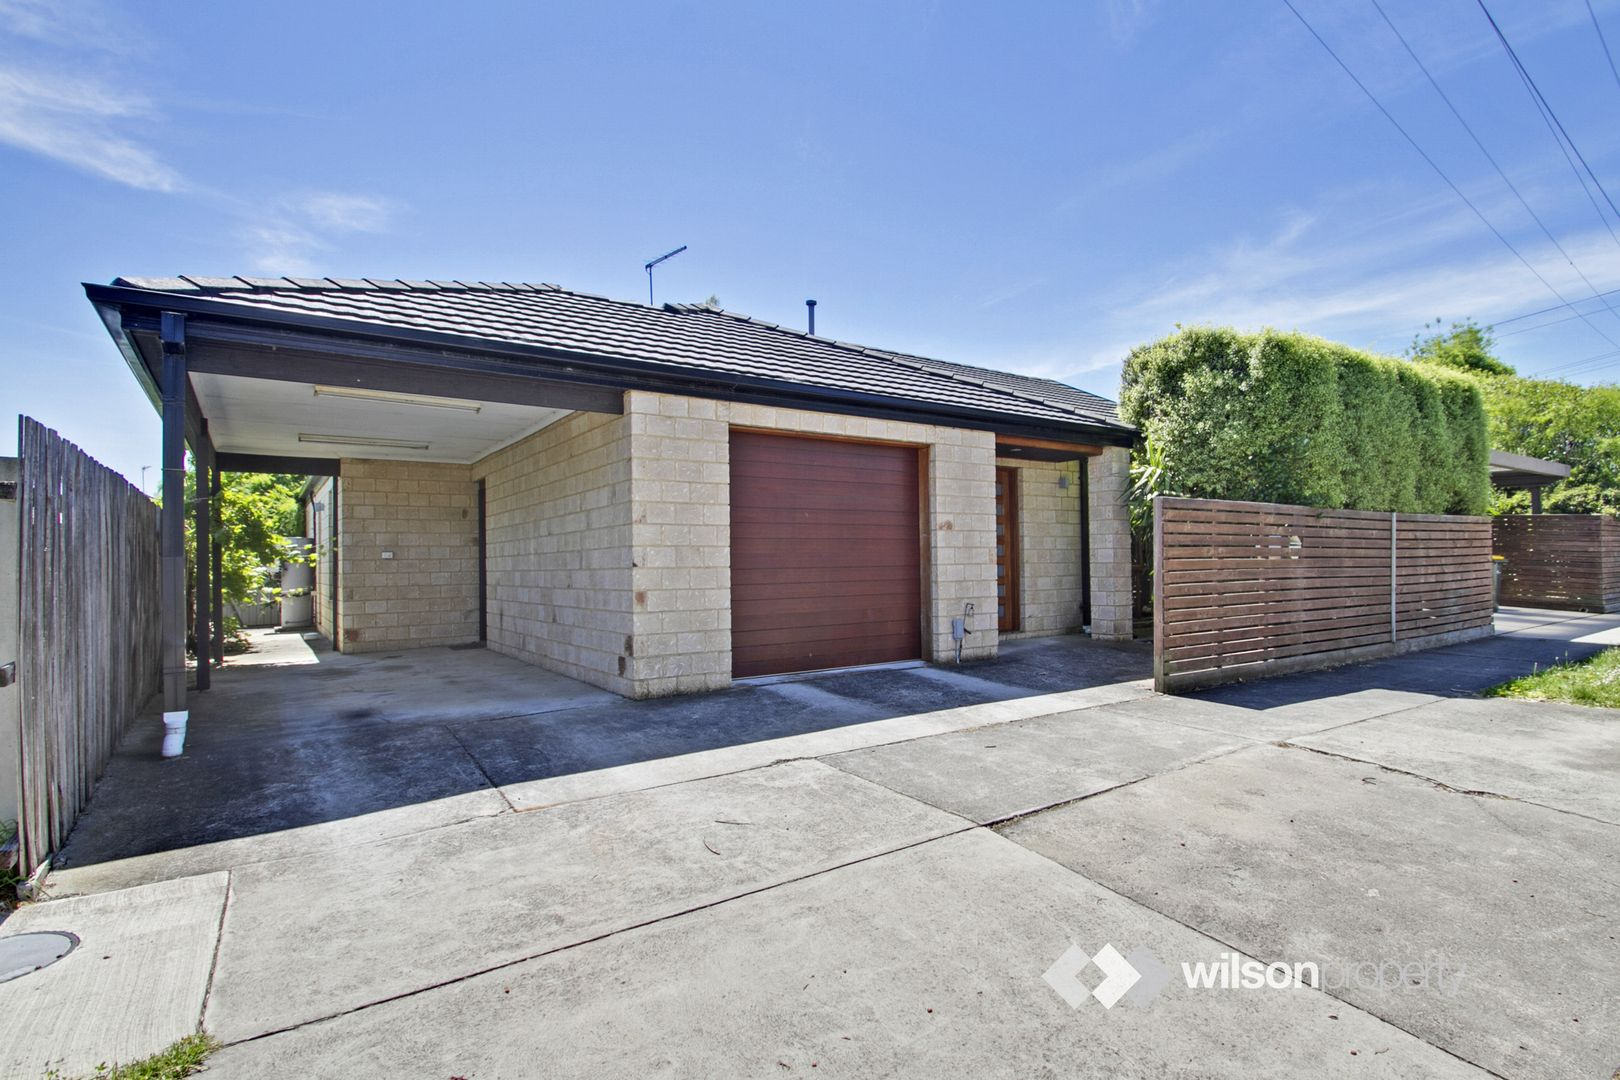 2/71 Washington Street, Traralgon VIC 3844, Image 0